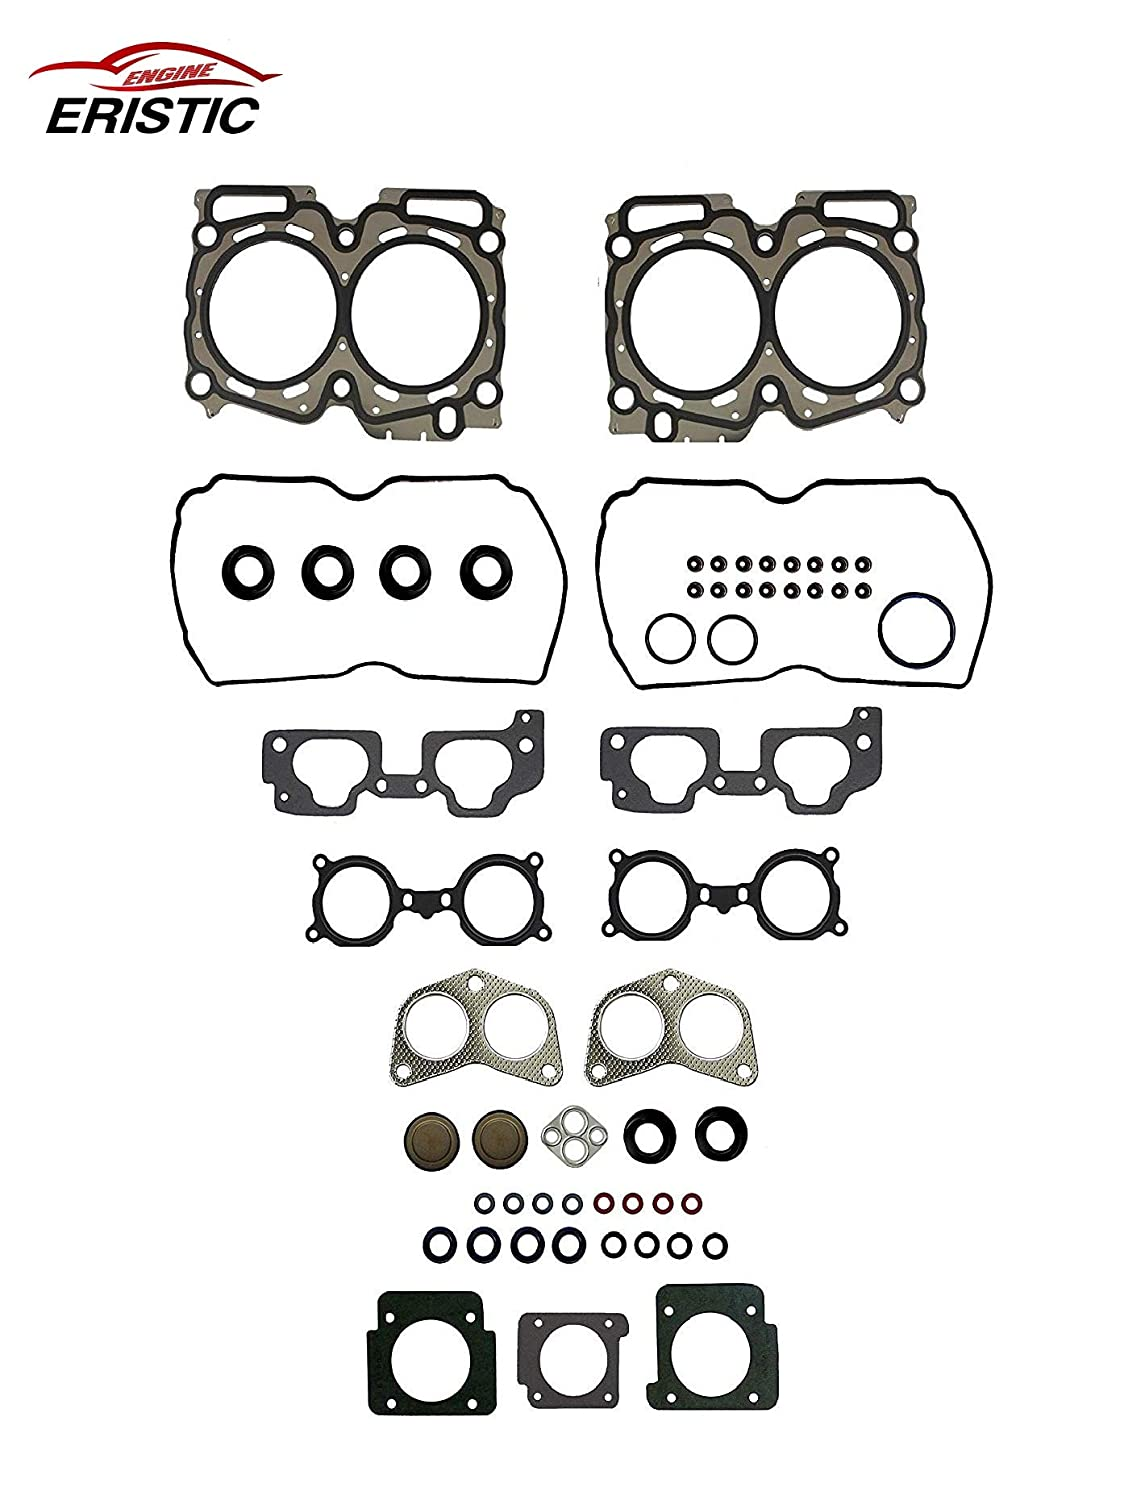 ERISTIC EH7227 Head Gasket Set For Subaru 2006-2011 Forester 2006-2011 Impreza 2006-2010 Legacy 2006-2011 Outback